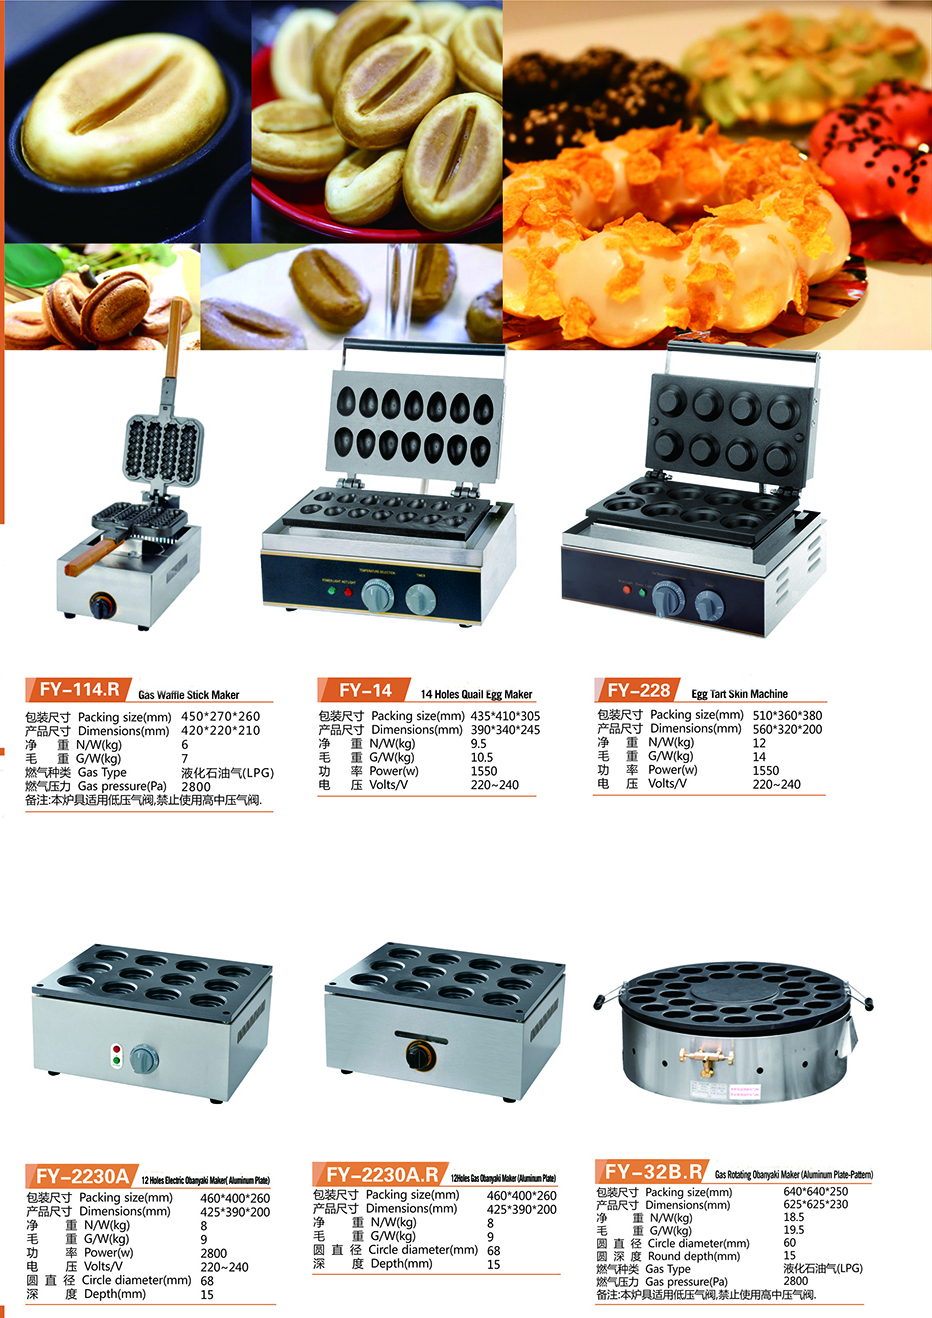 IS-FY-2248 Commercial Obanyaki Maker 48 Holes Electric Obanyaki Maker With Electrothermal Aluminium Plate